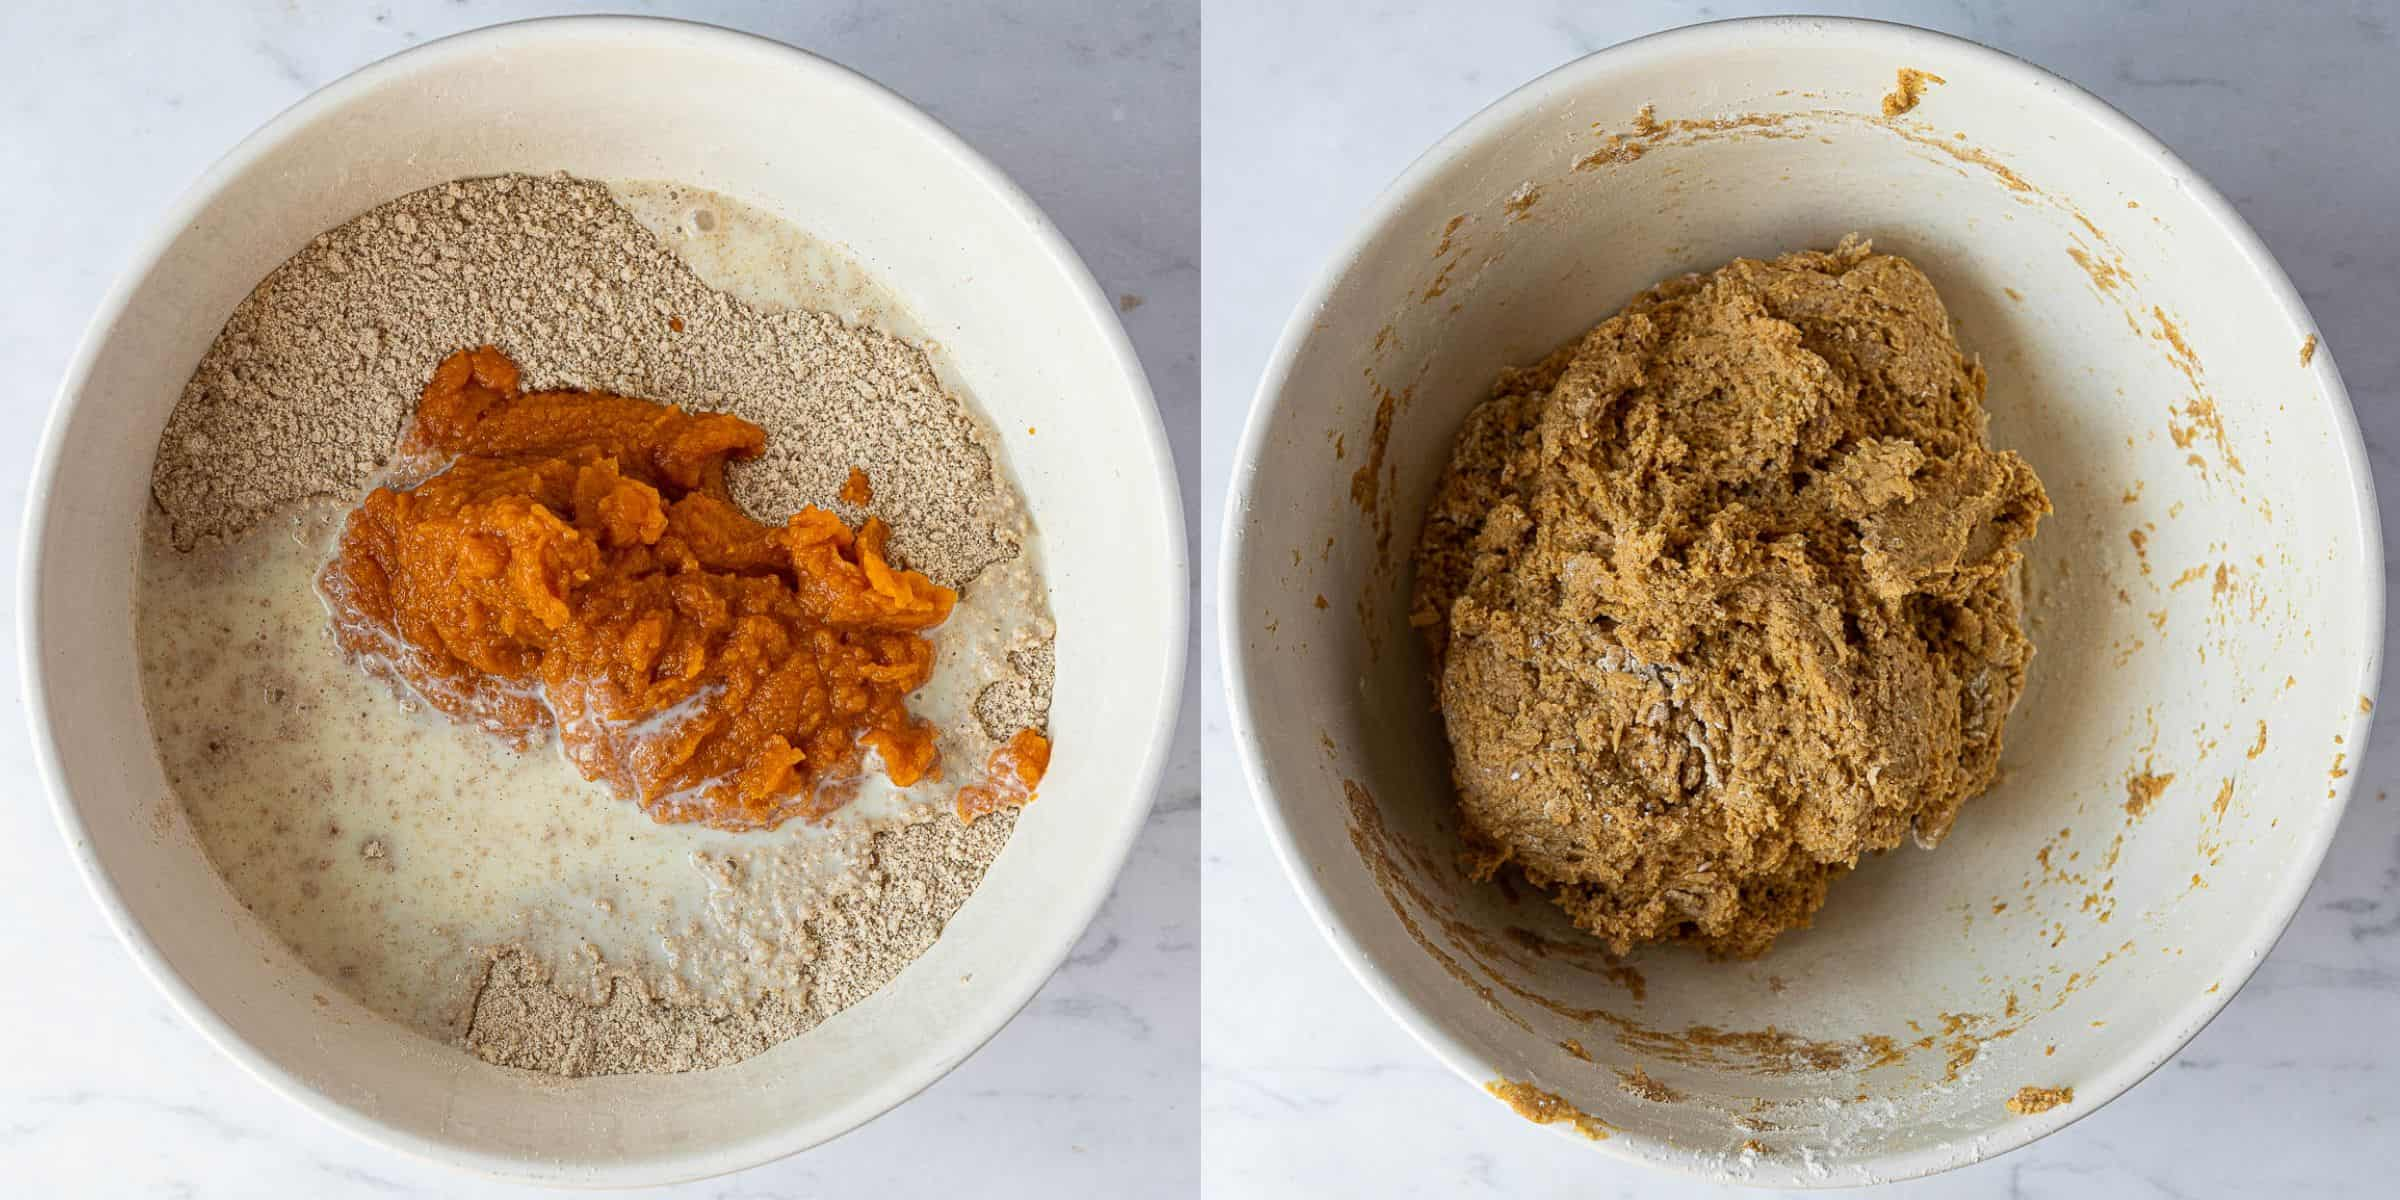 A two image collage of adding the wet ingredients and forming the dough.